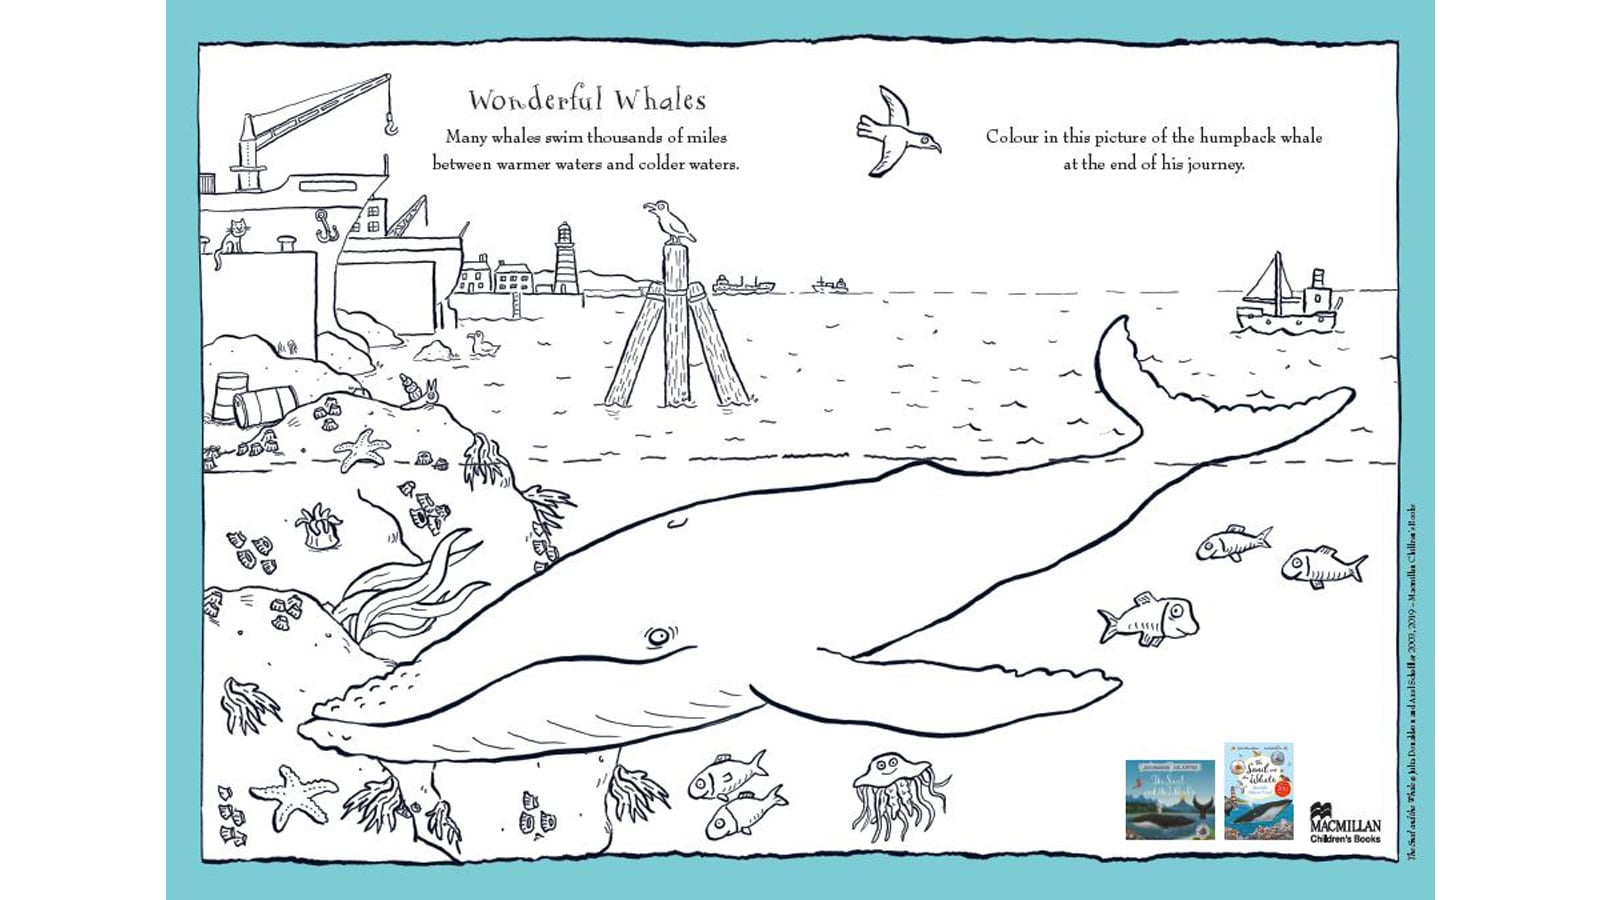 Activity sheet - Wonderful whales colouring sheet - The Snail and the Whale - Julia Donaldson - Axel Scheffler